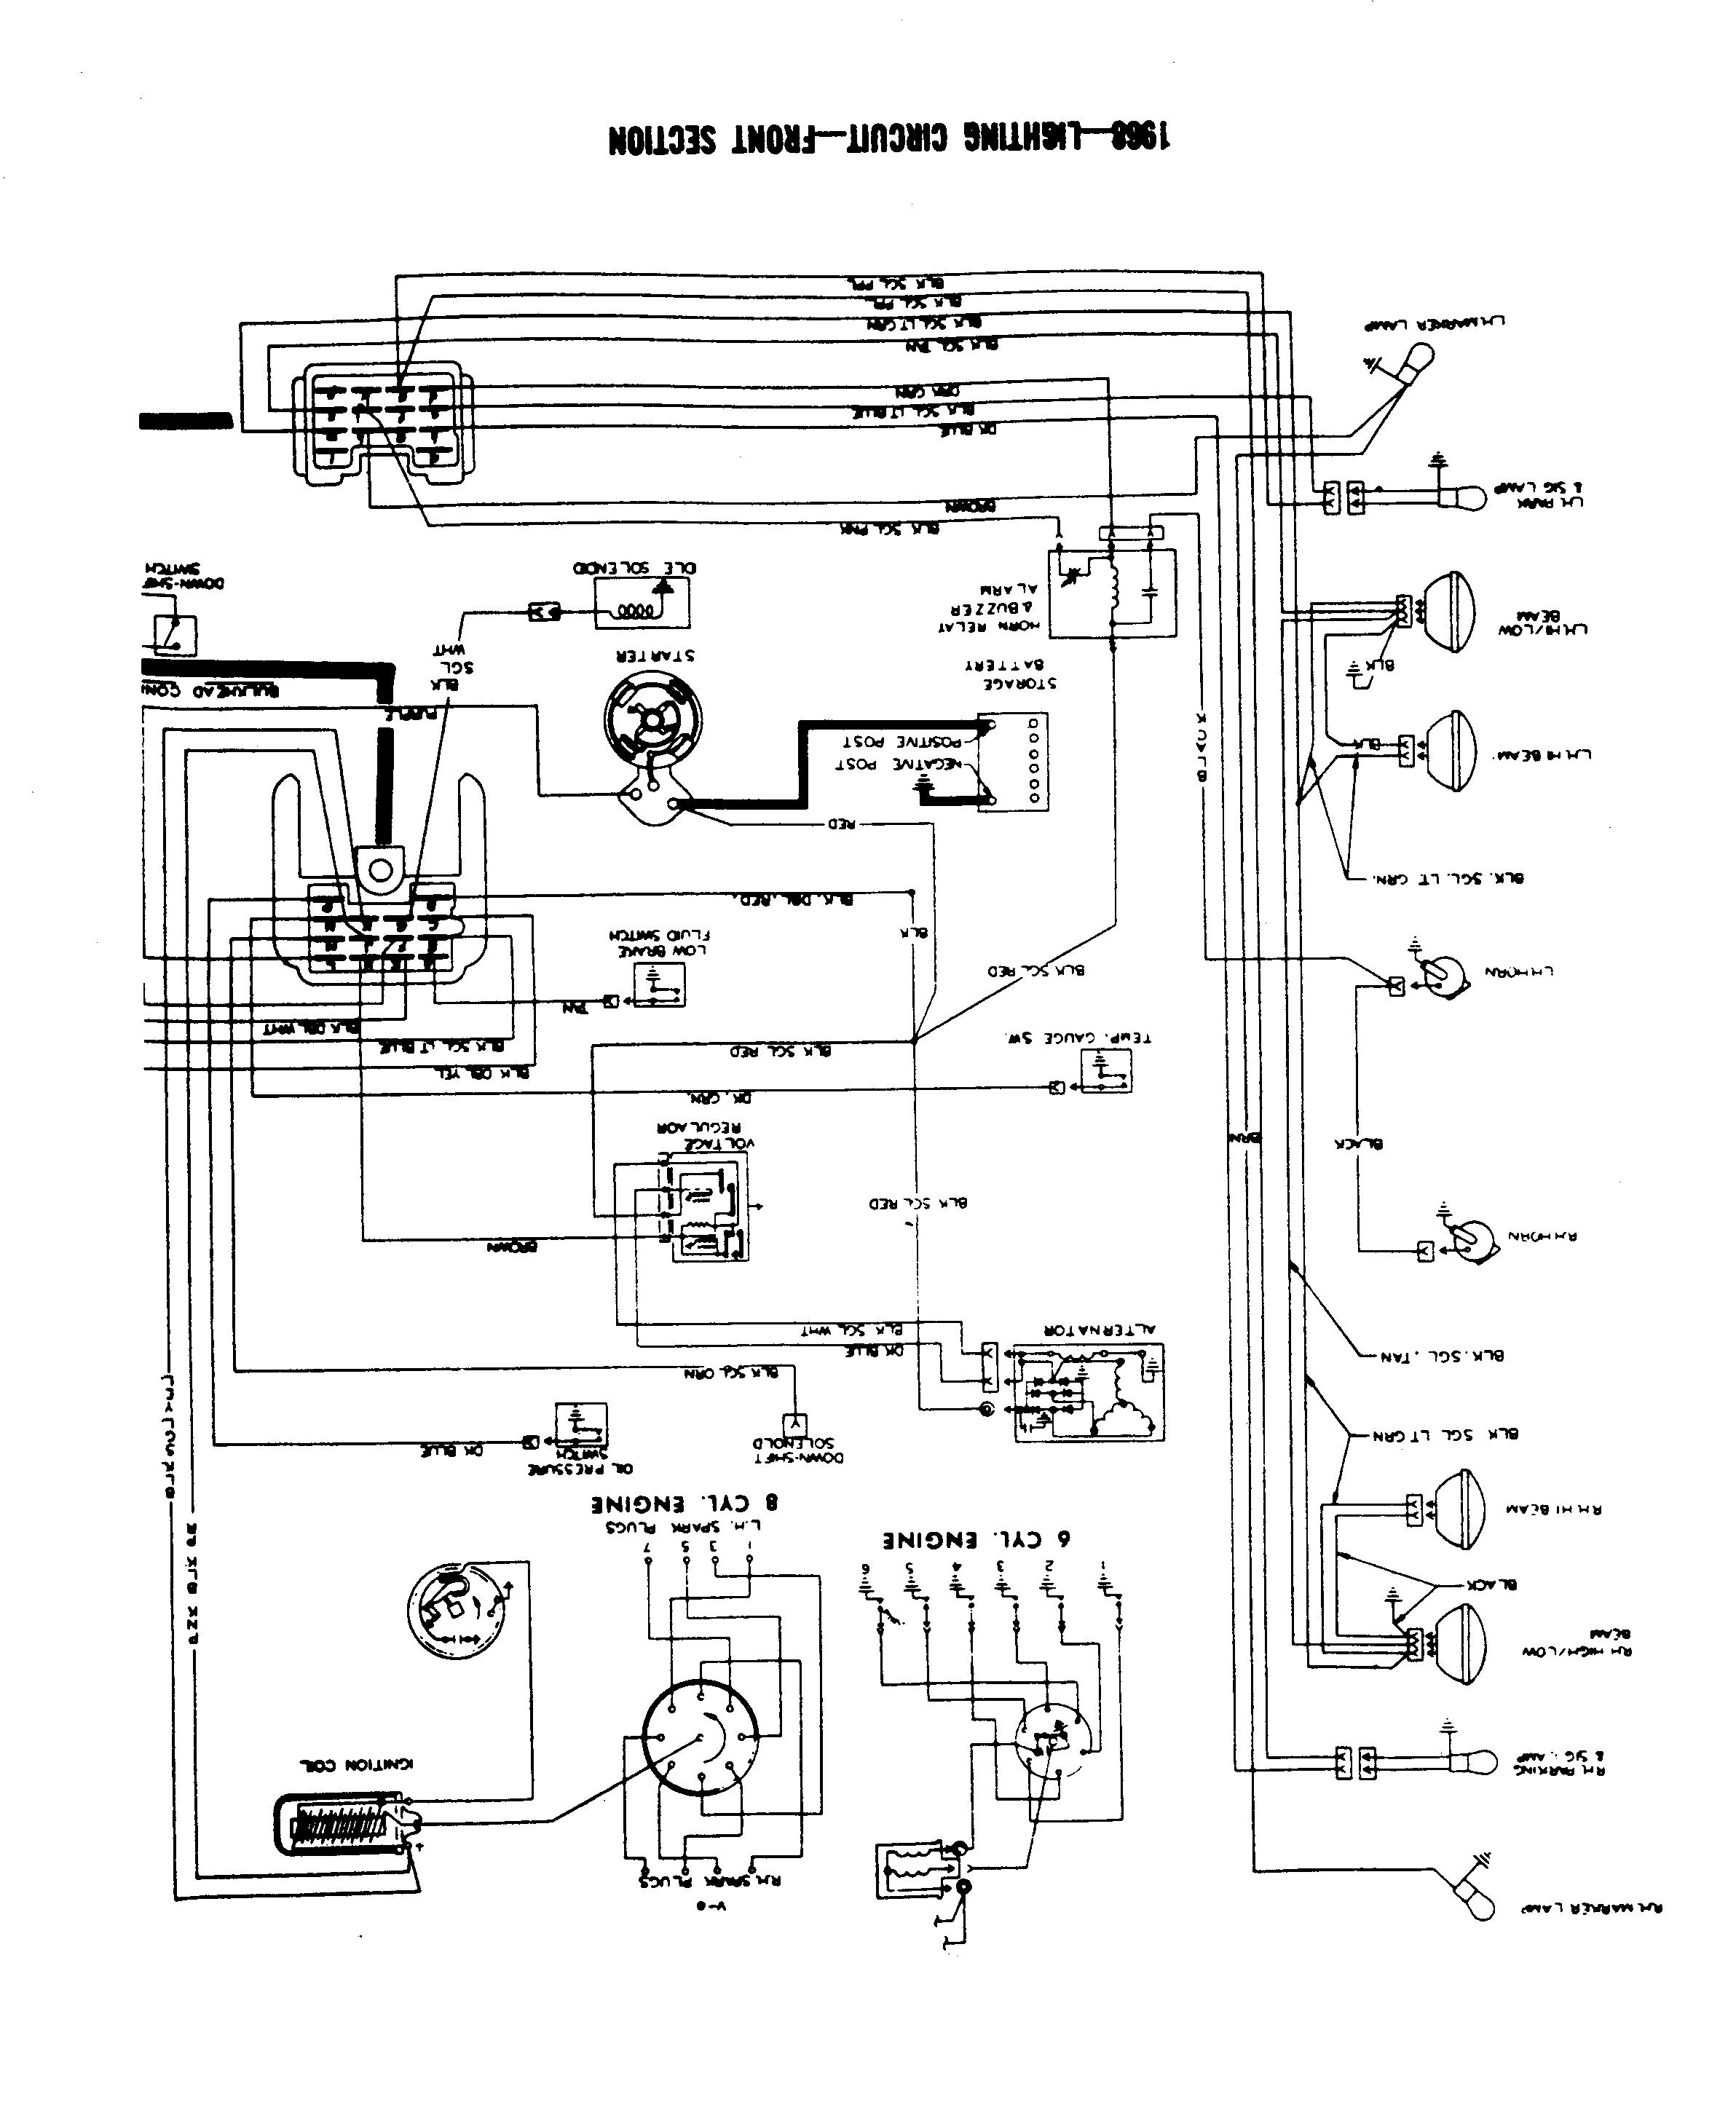 1999 mercury mystique wiring diagram